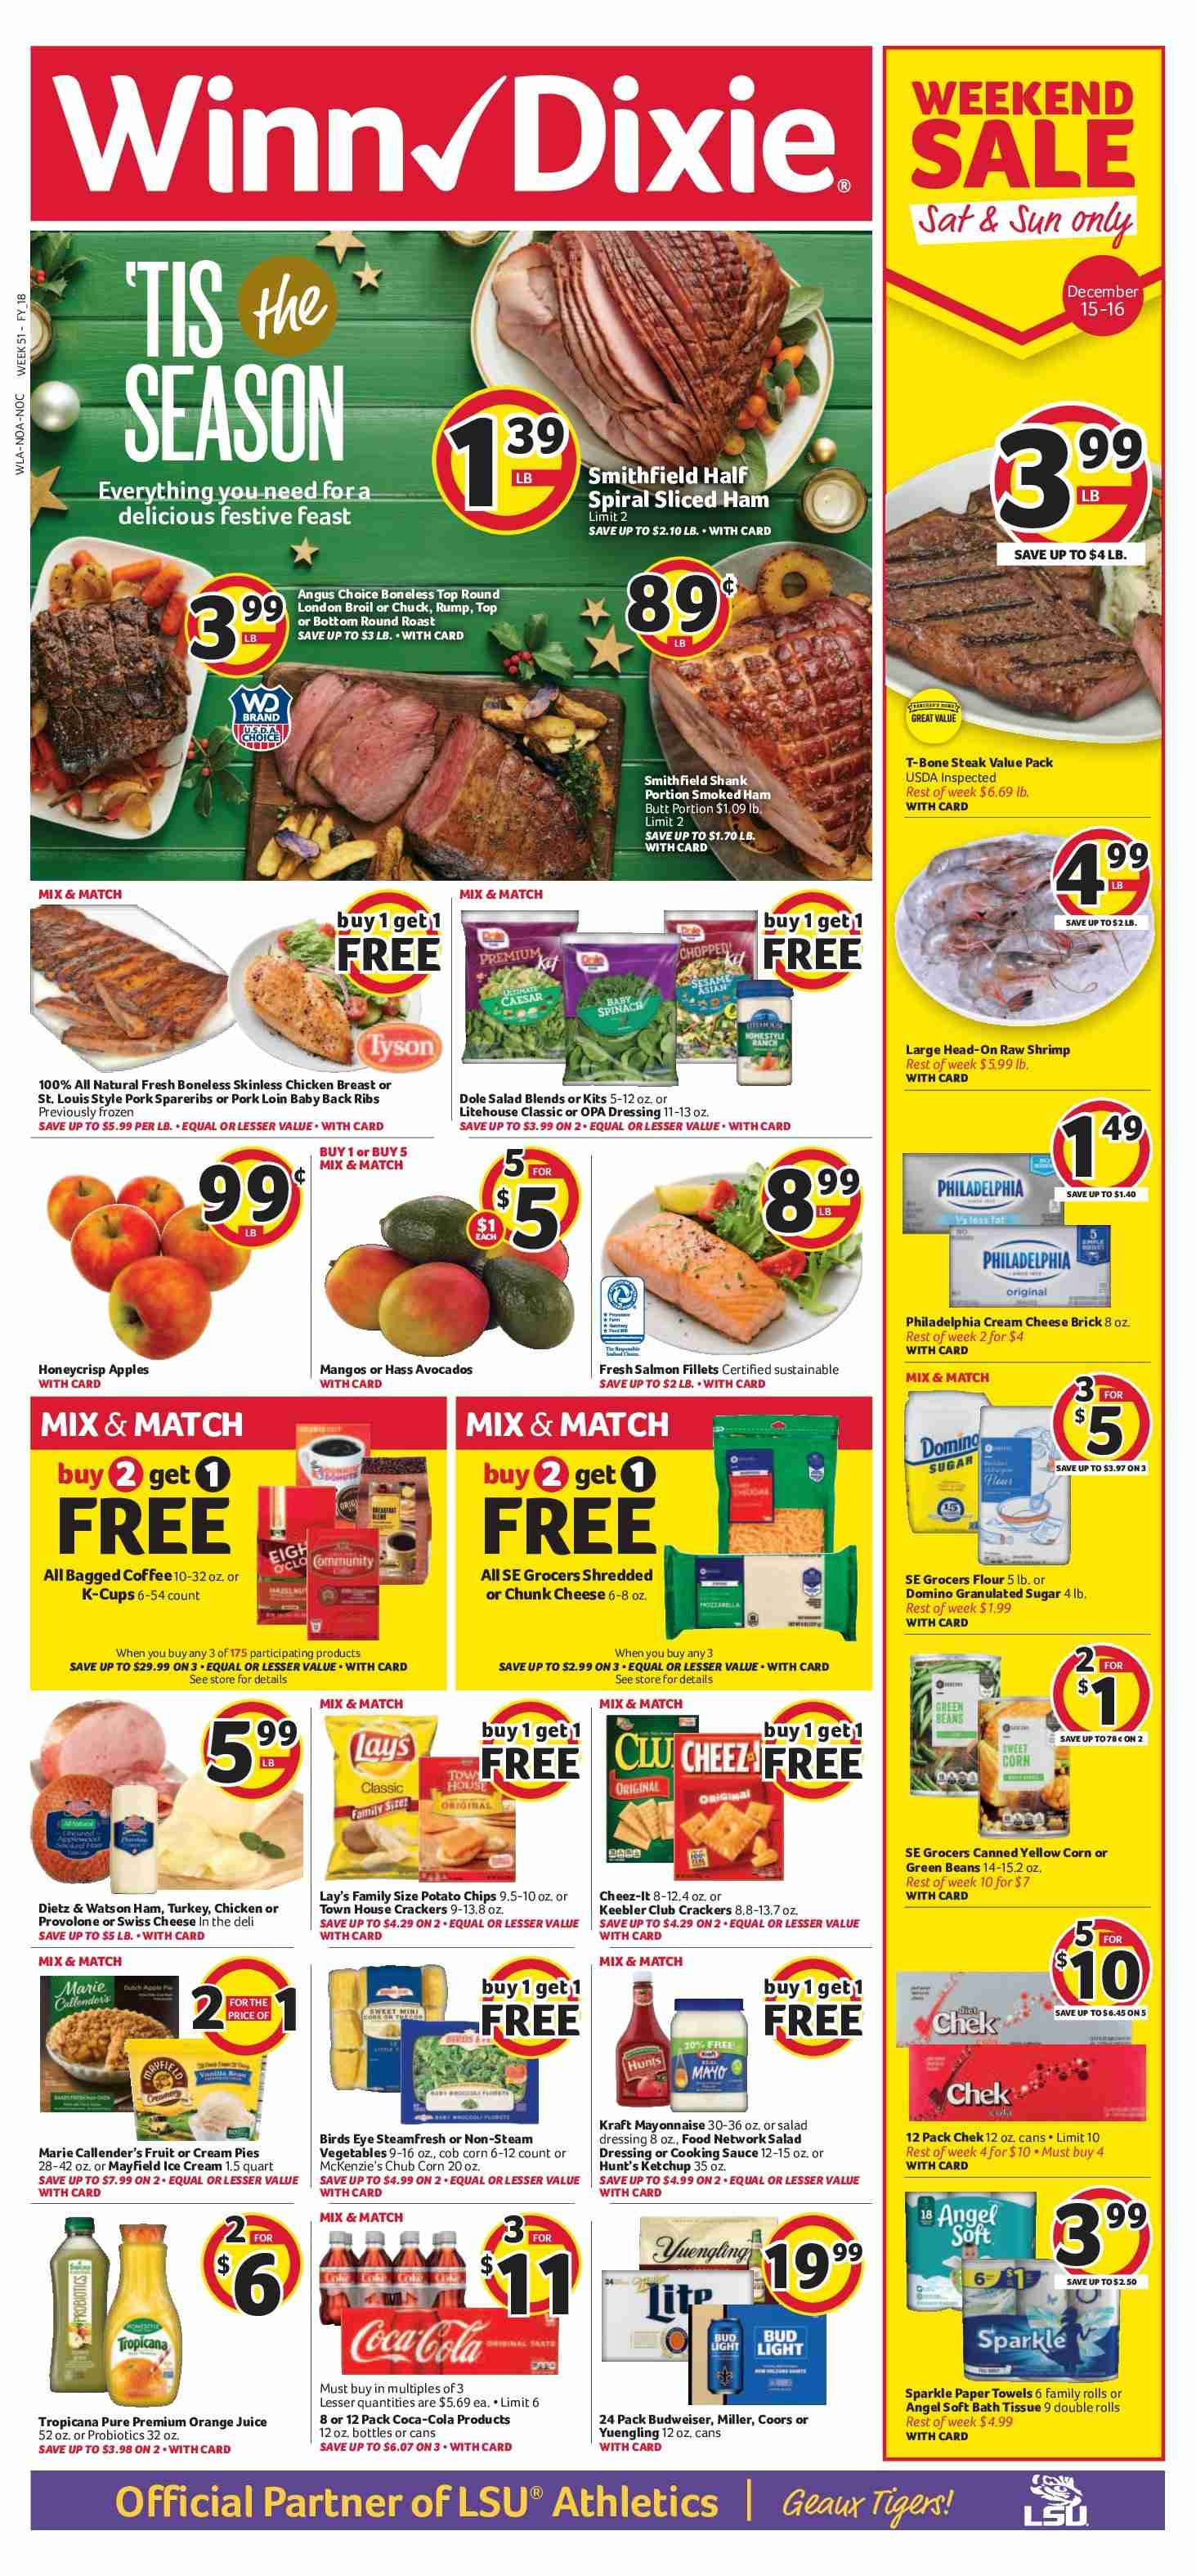 Winn Dixie Flyer - 12.12.2018 - 12.18.2018 - Sales products - angel, avocado, baby back pork ribs, bath, bath tissue, beans, budweiser, coca-cola, corn, crackers, cream cheese, cream pies, flour, frozen, granulated sugar, green beans, mango, mayonnaise, salad dressing, salmon, shrimp, sugar, swiss cheese, towel, turkey, ham, head, ice cream, philadelphia, pork loin, pork meat, potato chips, probiotics, provolone, chicken, chicken breast, paper towel, orange juice, chips, steak, cheese, juice, smoked ham, dressing, lay's. Page 1.